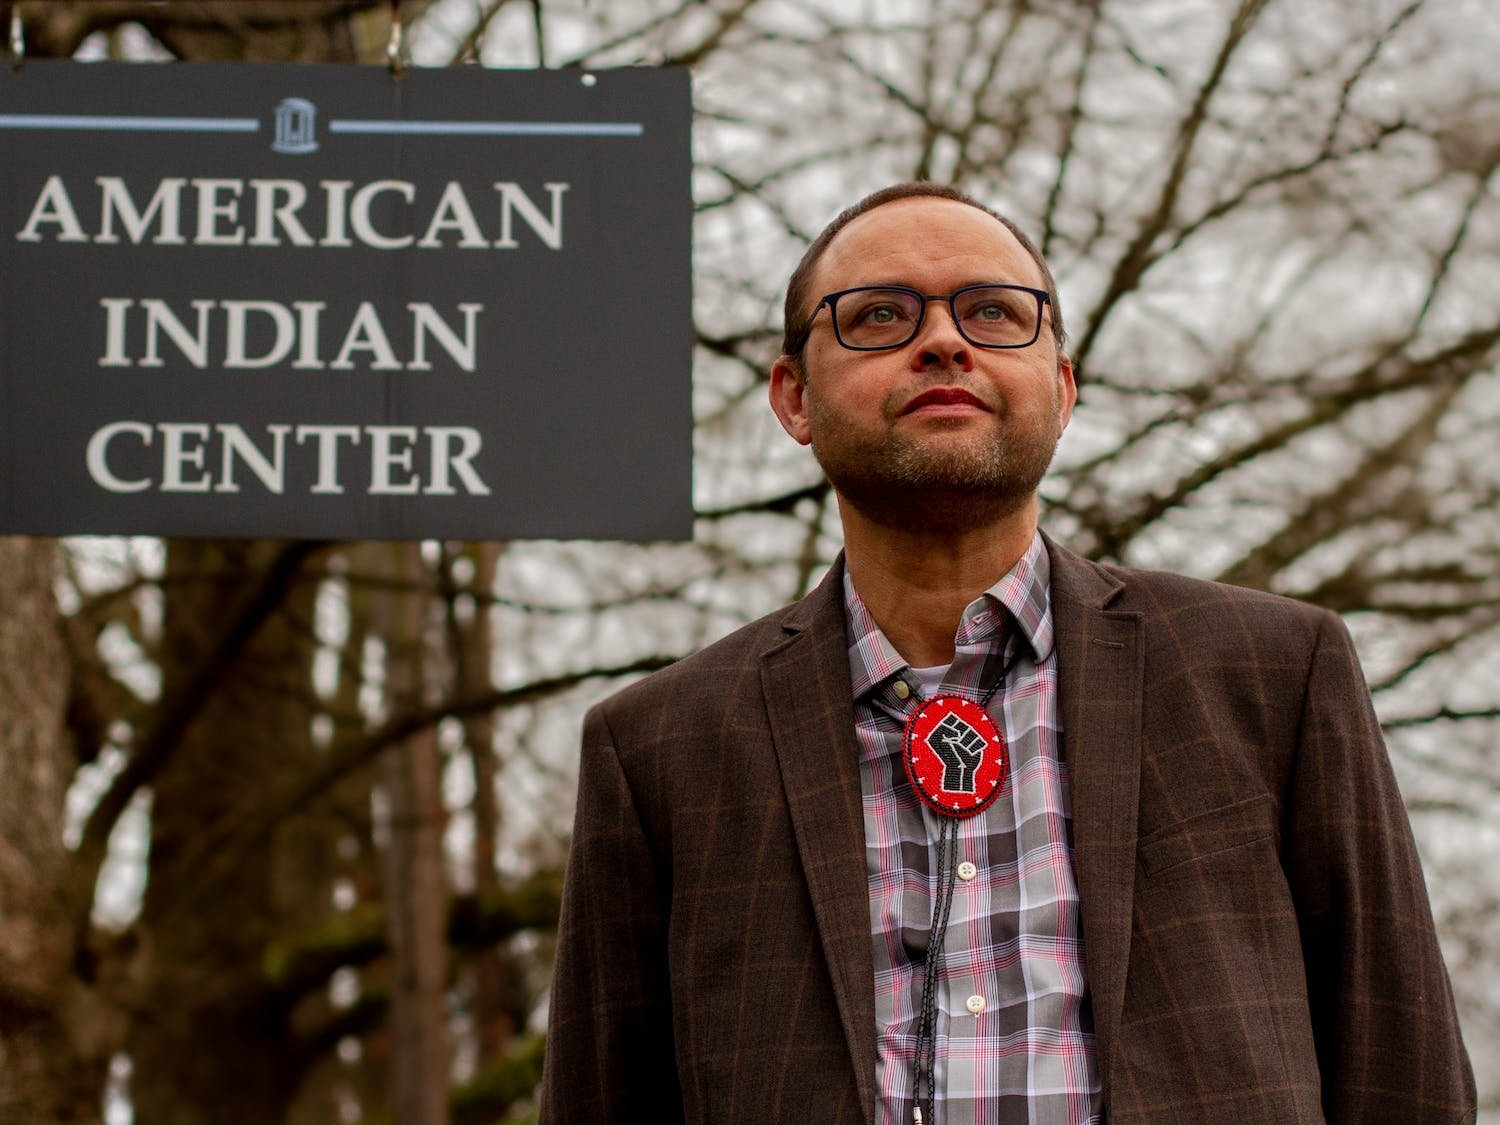 """Dr. Larry Chavis, director of the UNC American Indian Center, poses for a portrait in Chapel Hill on Monday, Mar. 1, 2021. Chavis, who is a member of the Lumbee Tribe of North Carolina, notes the importance of belonging and of doing so """"on your own terms."""""""